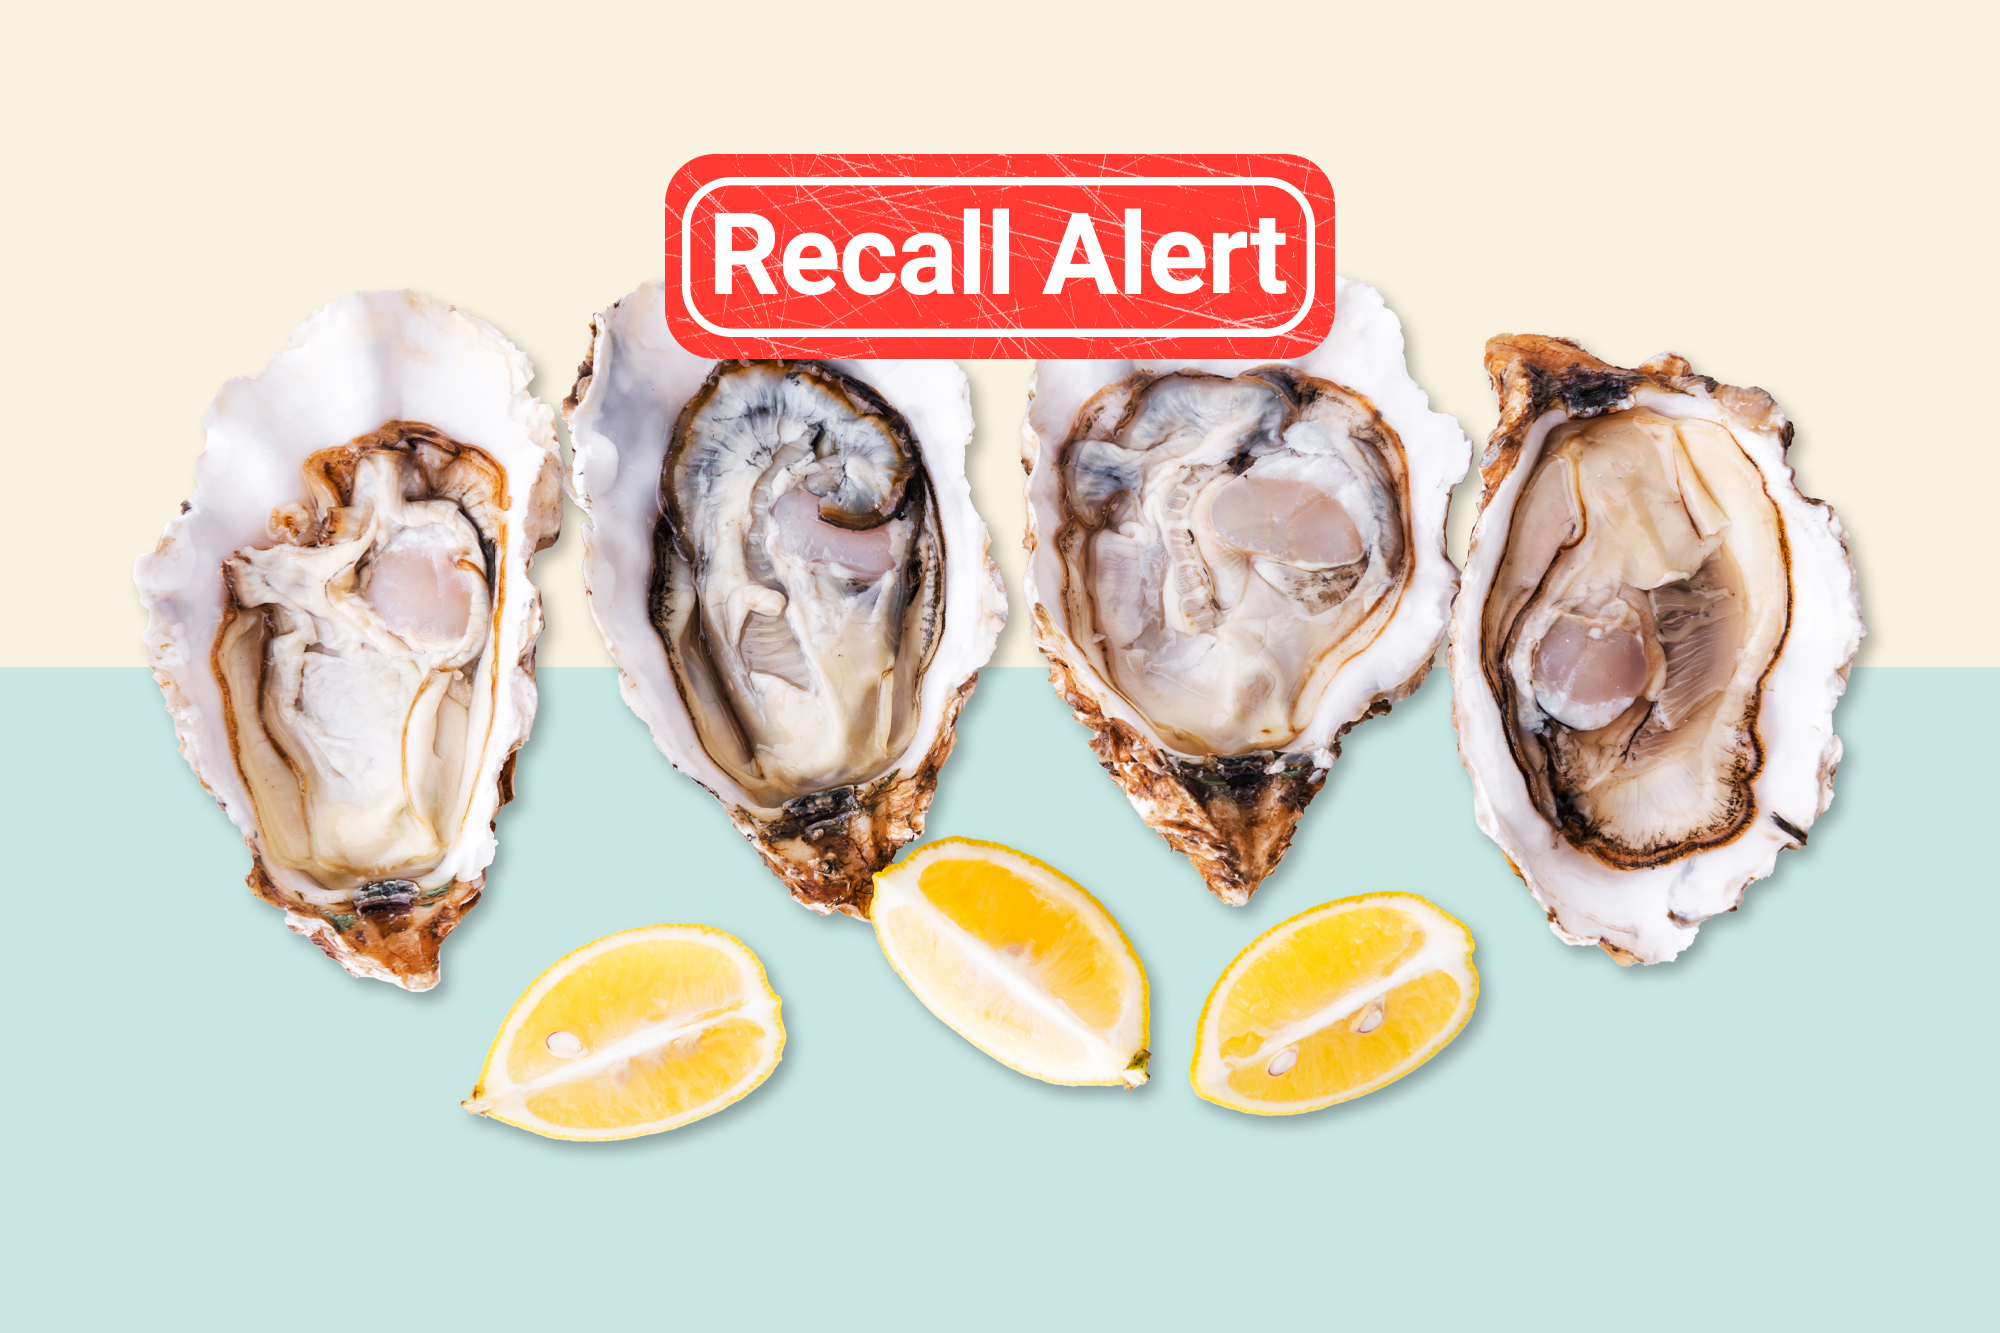 Raw oysters and lemons on a designed background with a recall button